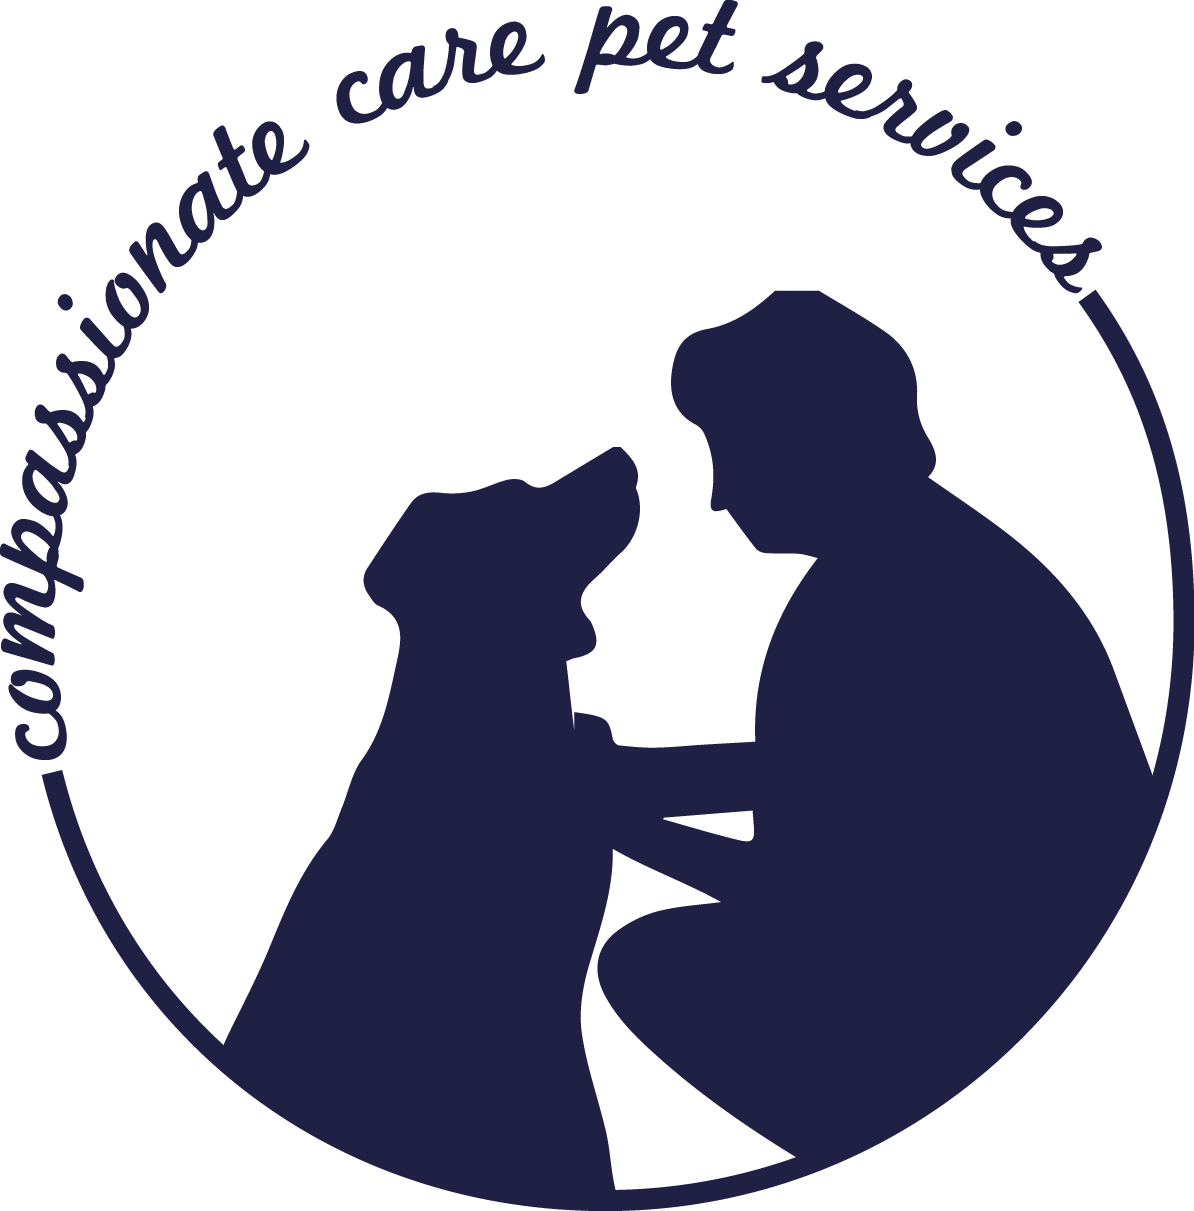 Compassionate Care Pet Services